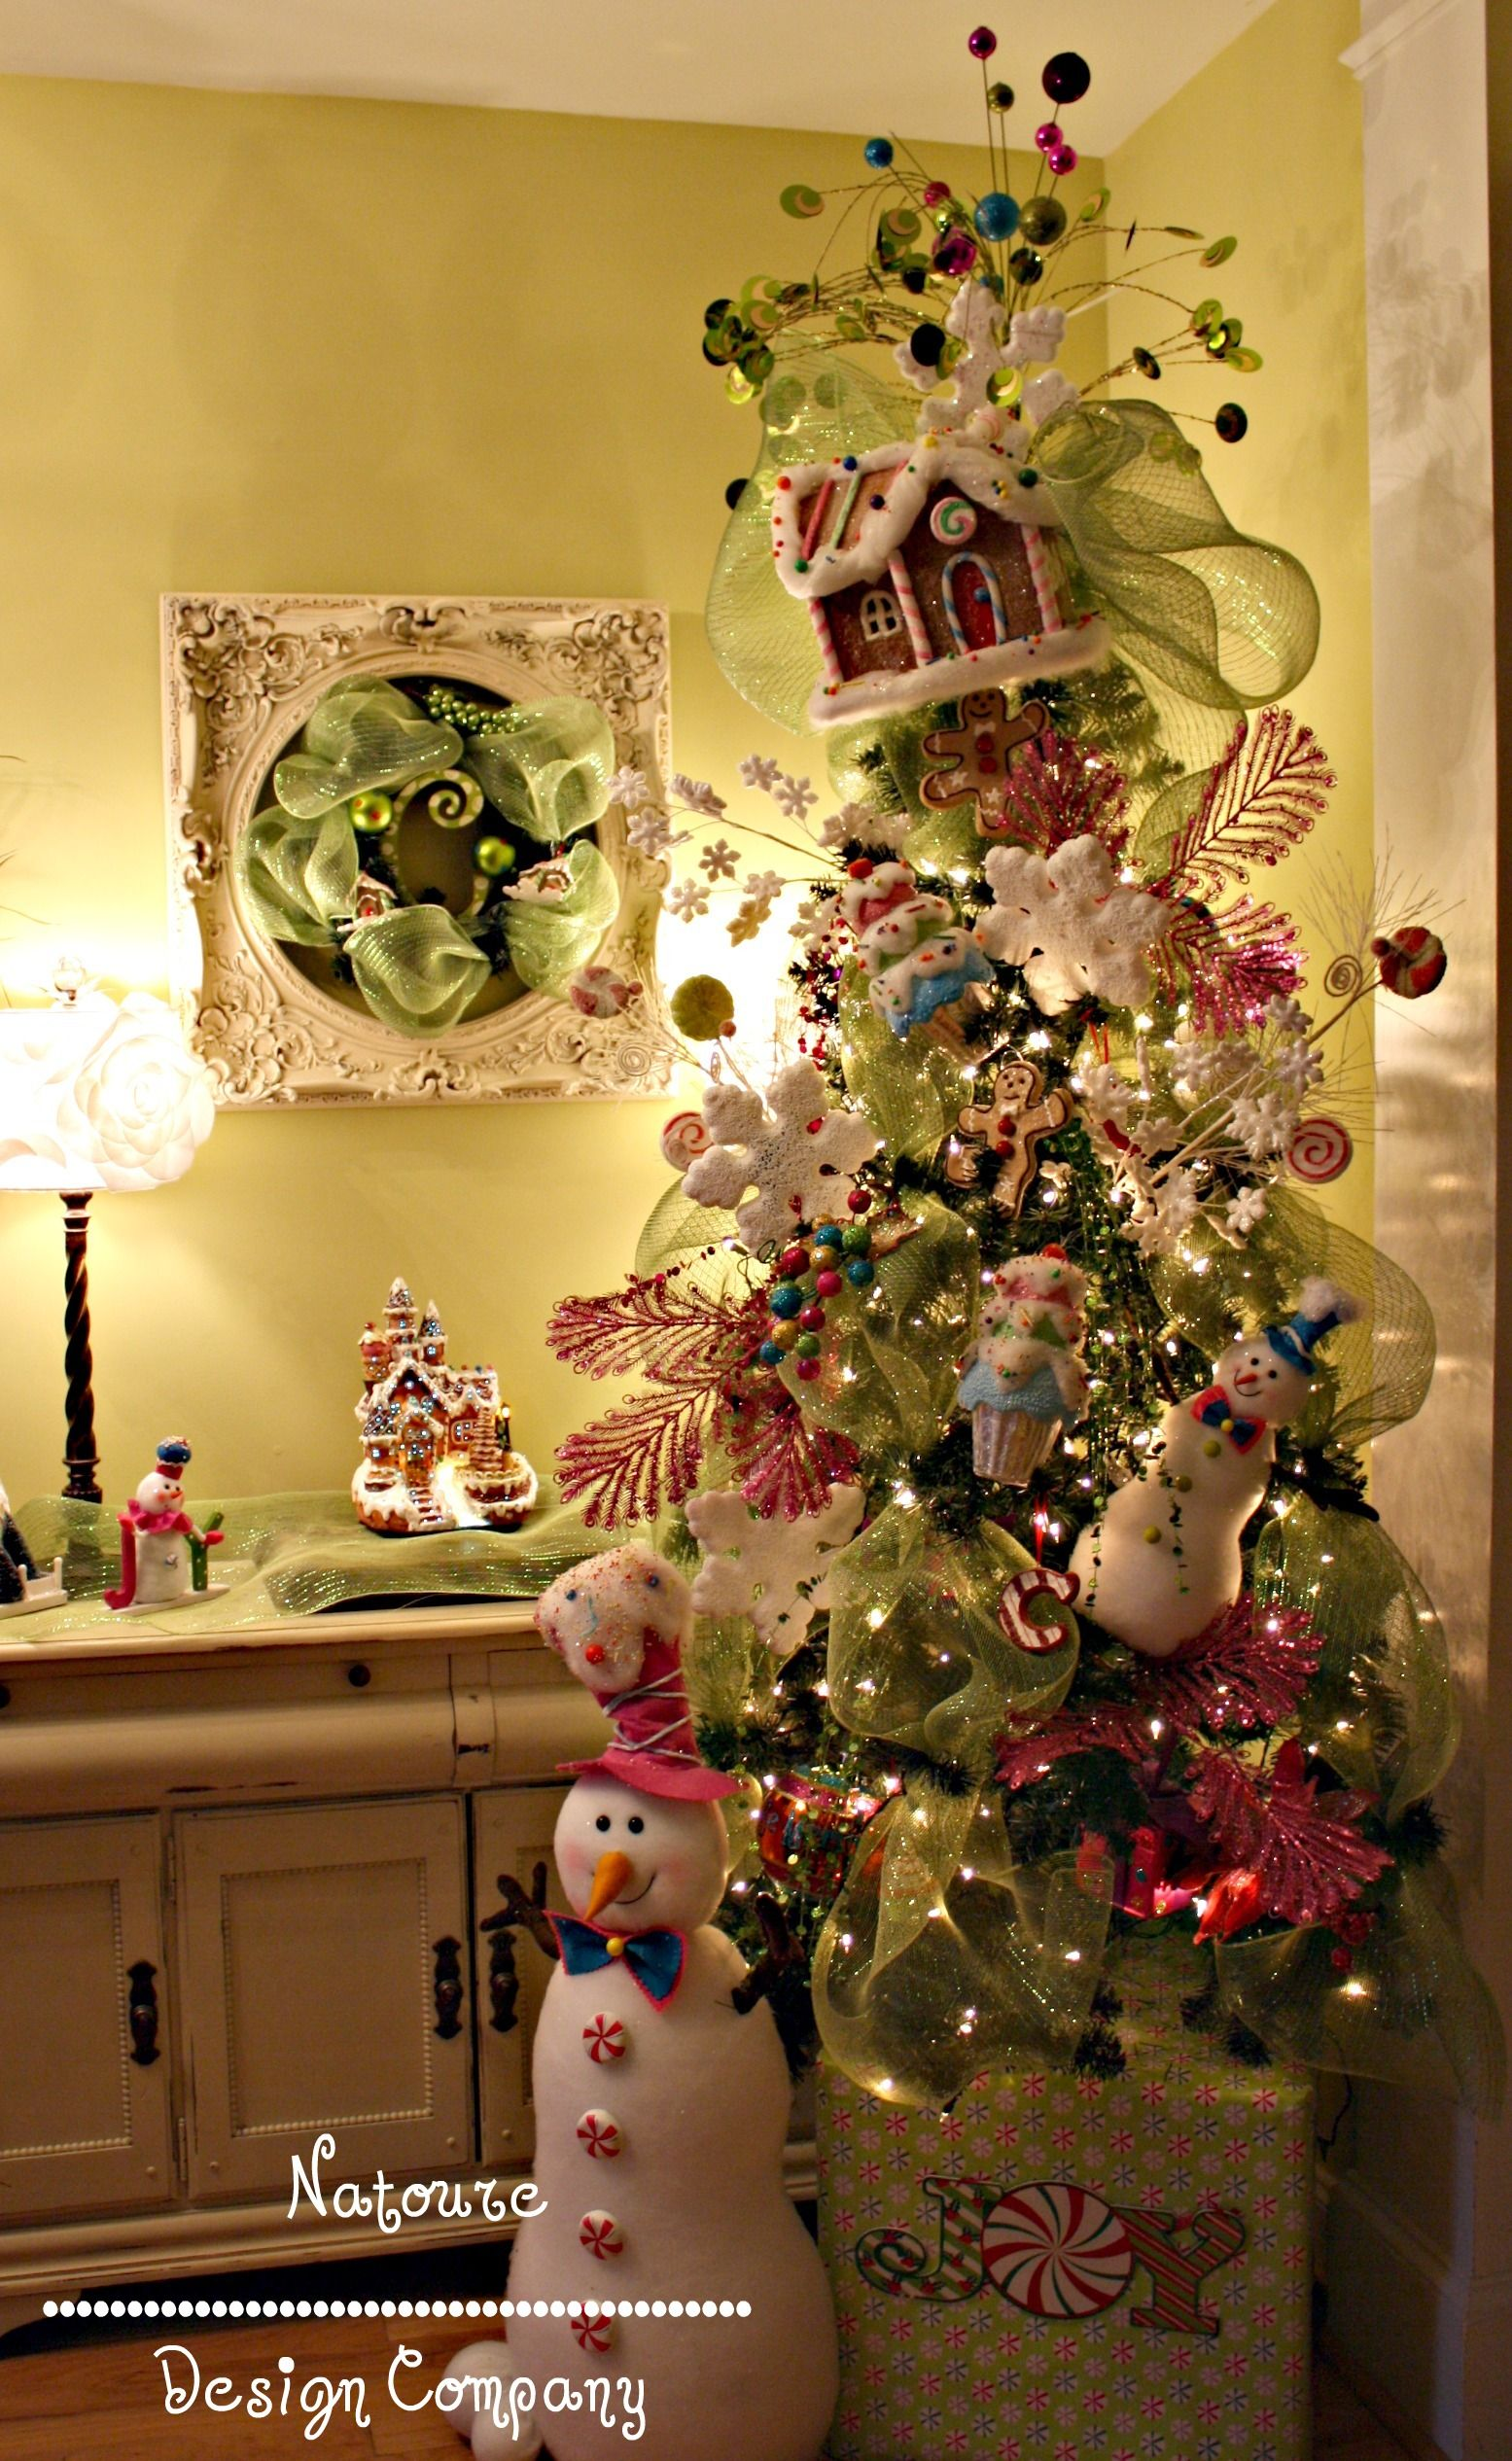 Whimsical Gingerbread Theme Tree Whimsical Christmas Trees Whimsical Christmas Holiday Christmas Tree